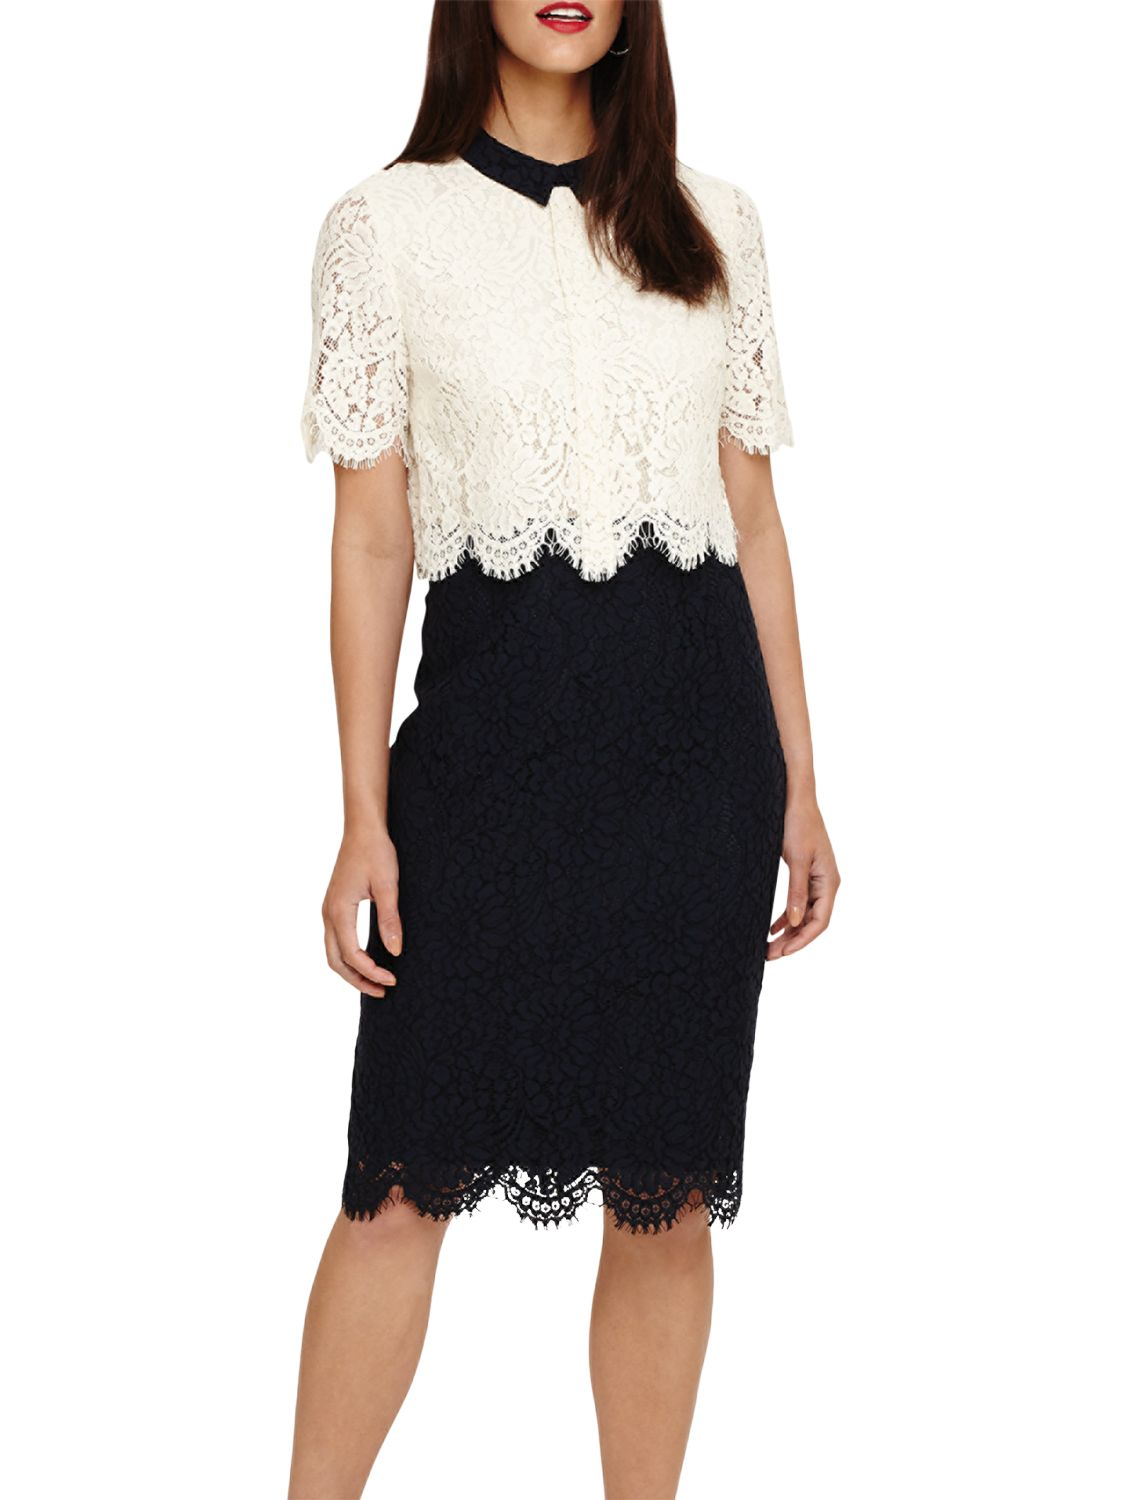 navy and cream lace dress off 9   medpharmres.com